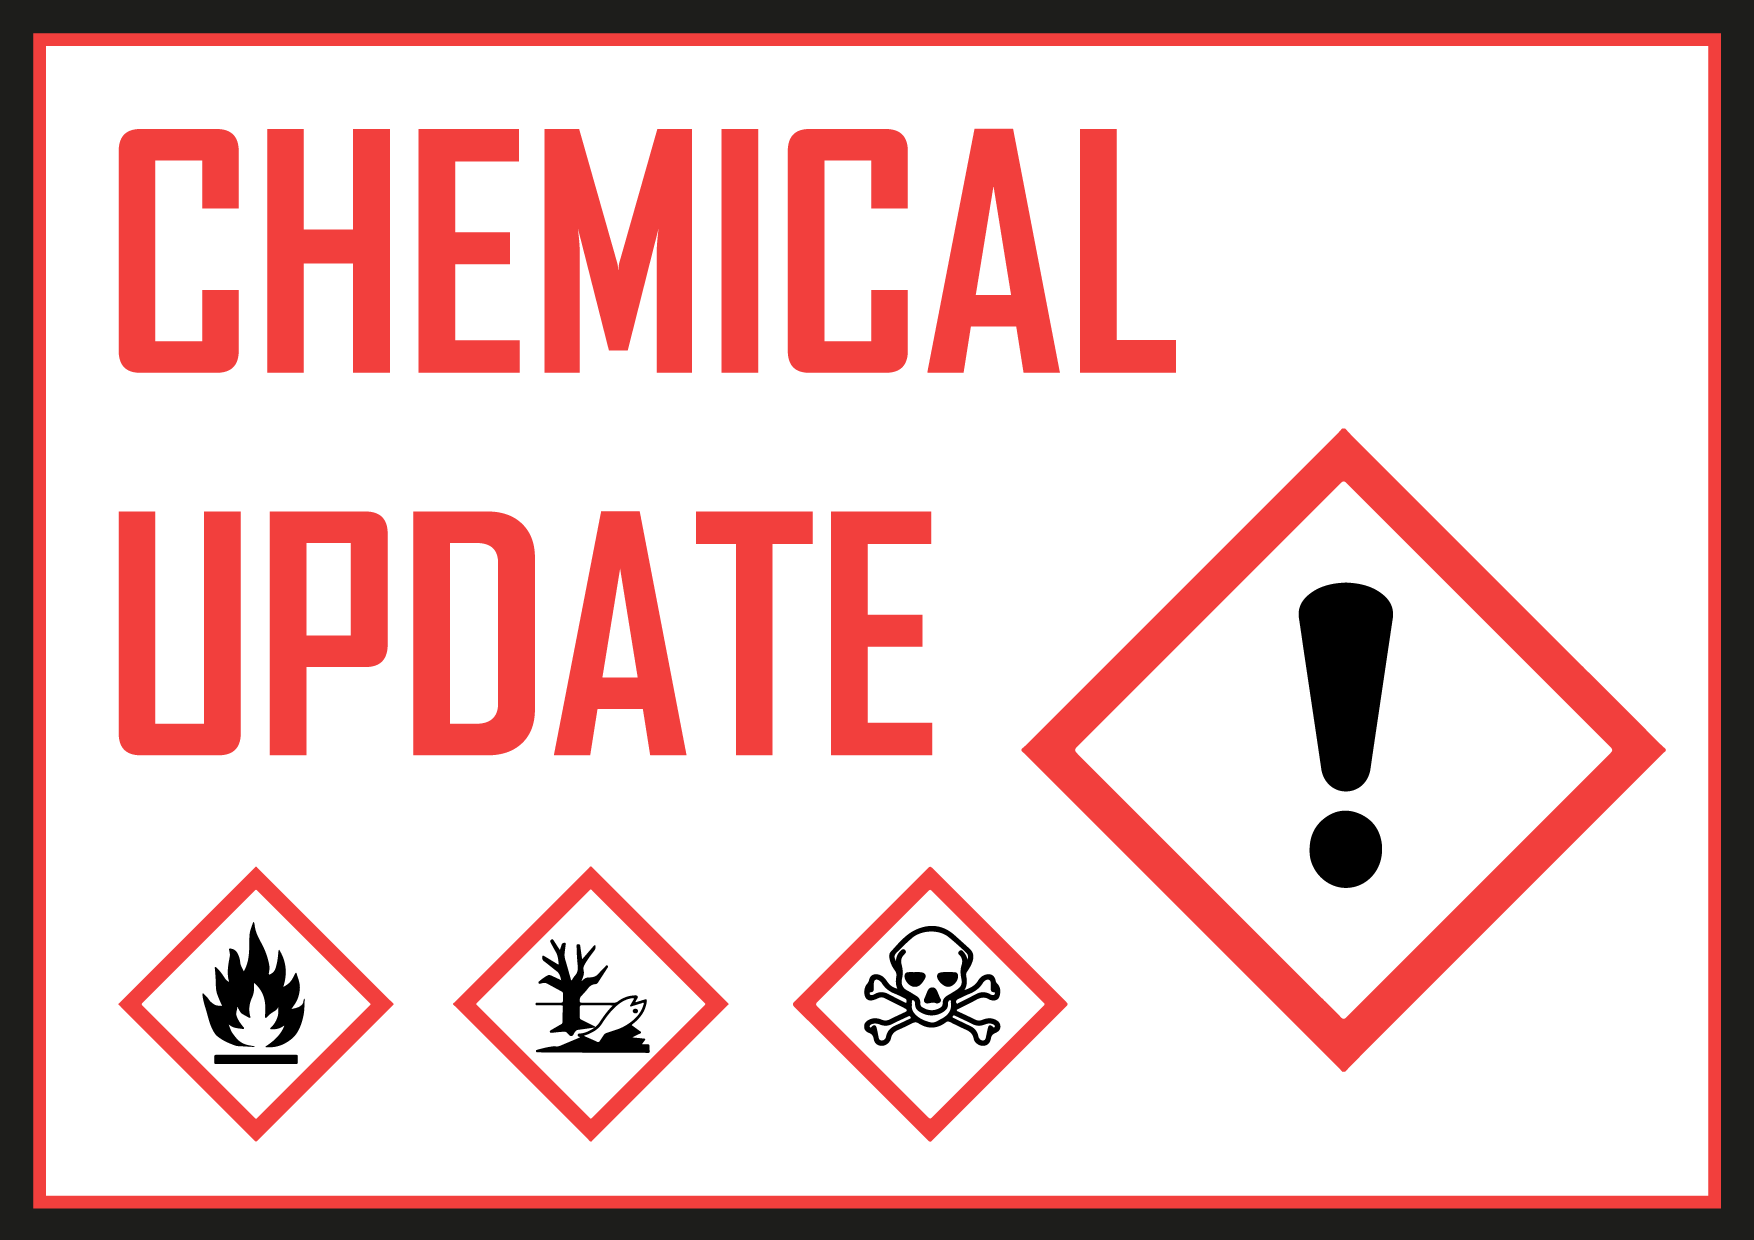 chemical update on basis